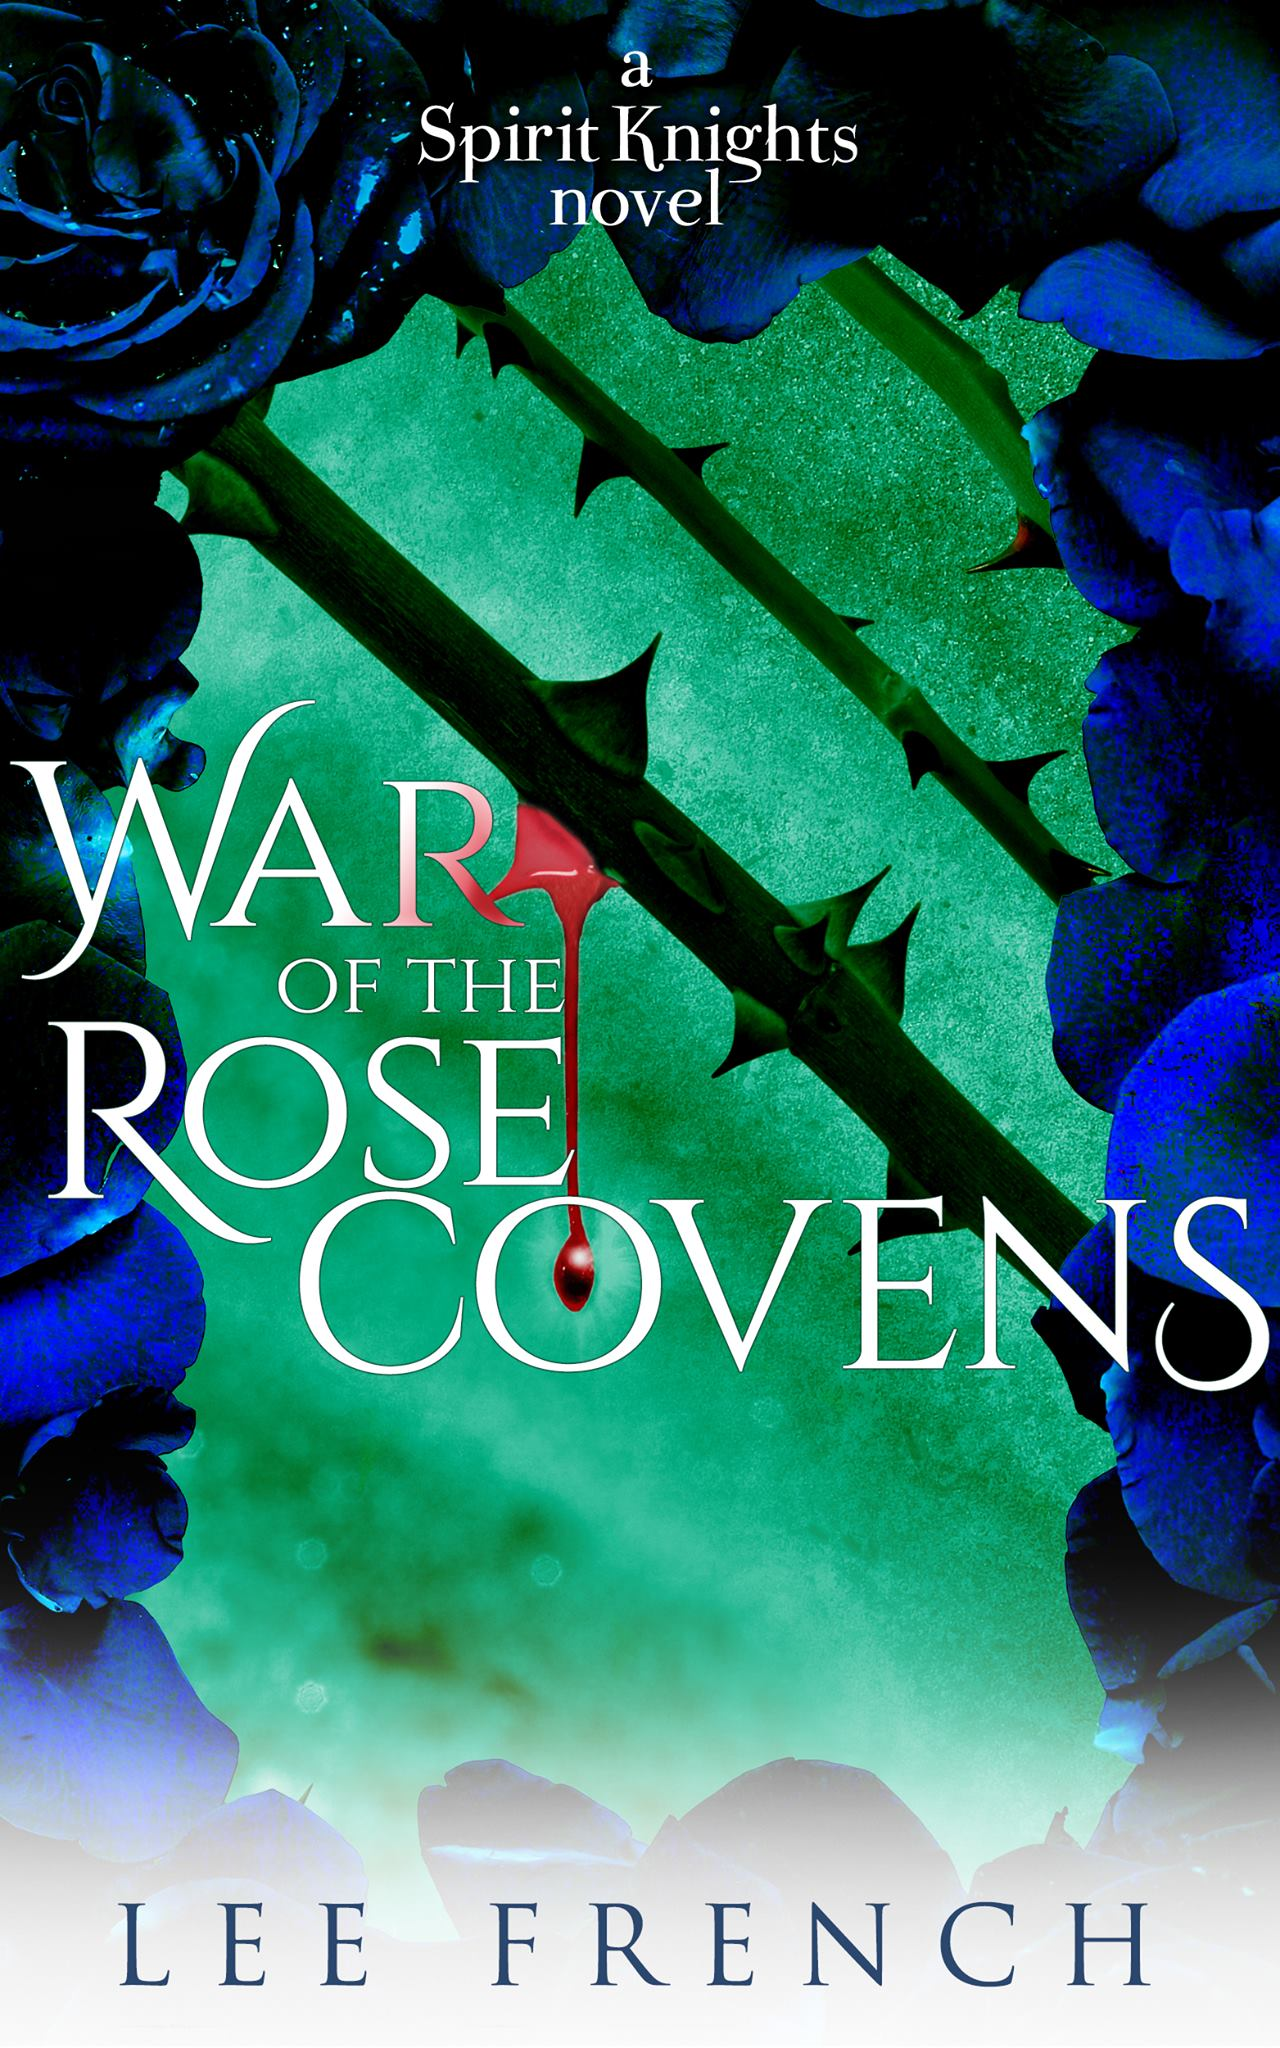 WAR OF THE ROSE COVENS   Lee French     Magic turned sixteen-year-old Sophie into her mother's favorite disappointment, and the feeling is mutual.  After fleeing the Petal Society Coven, she's forced to learn the dark truth of why she's now being hunted down, and why even her new friends can't save her.